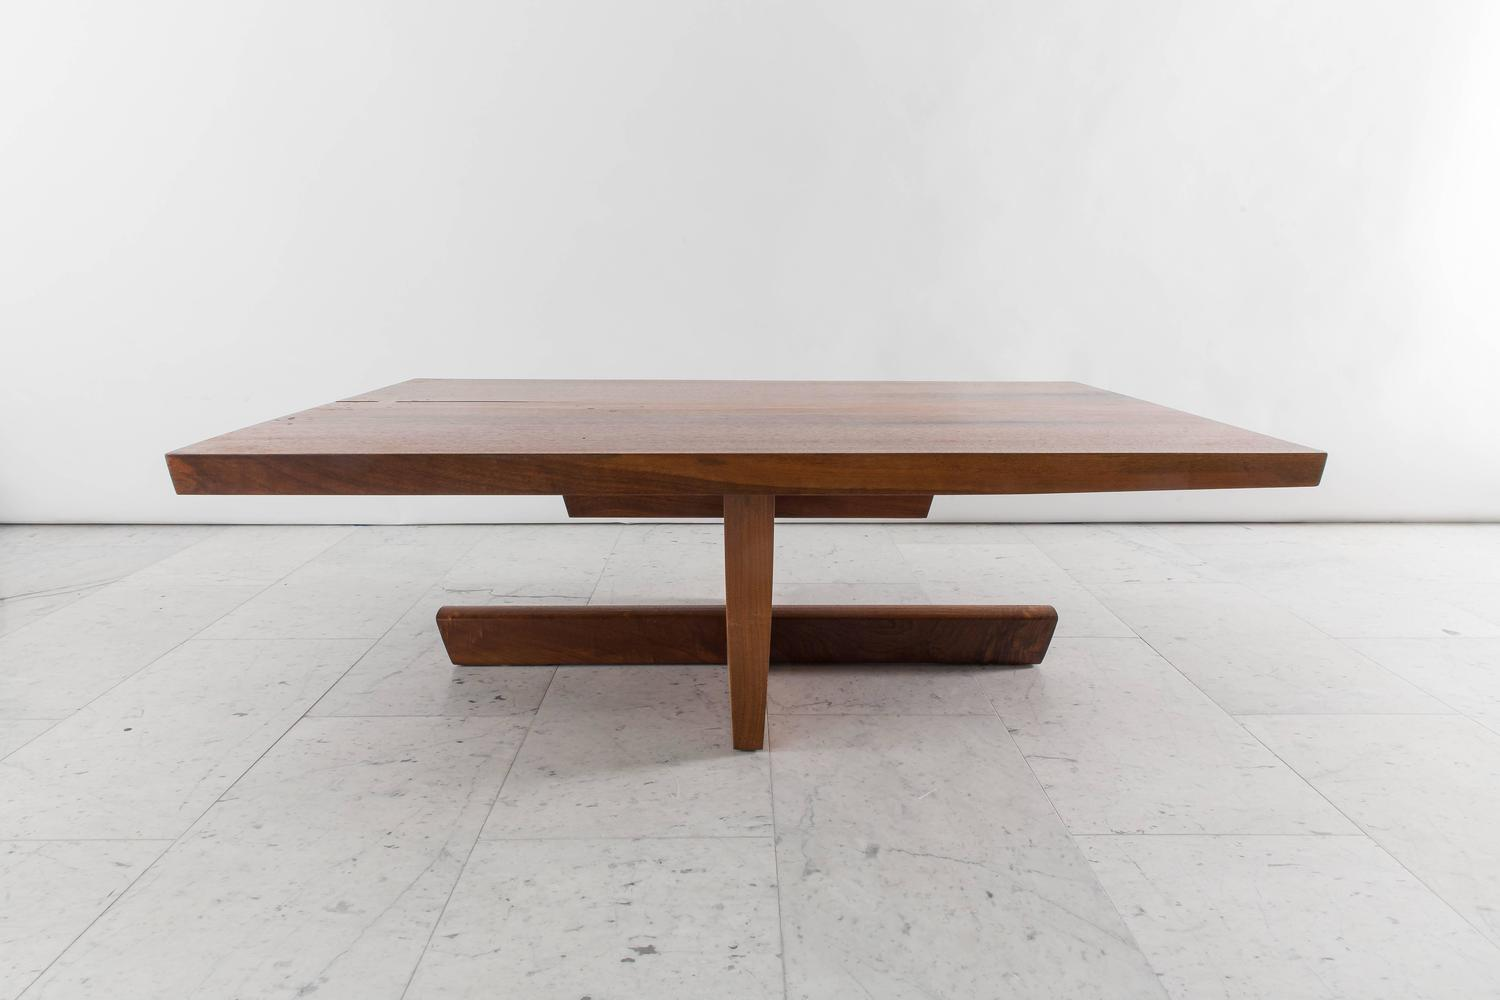 George nakashima large minguren low table usa 1974 at for Large low coffee table